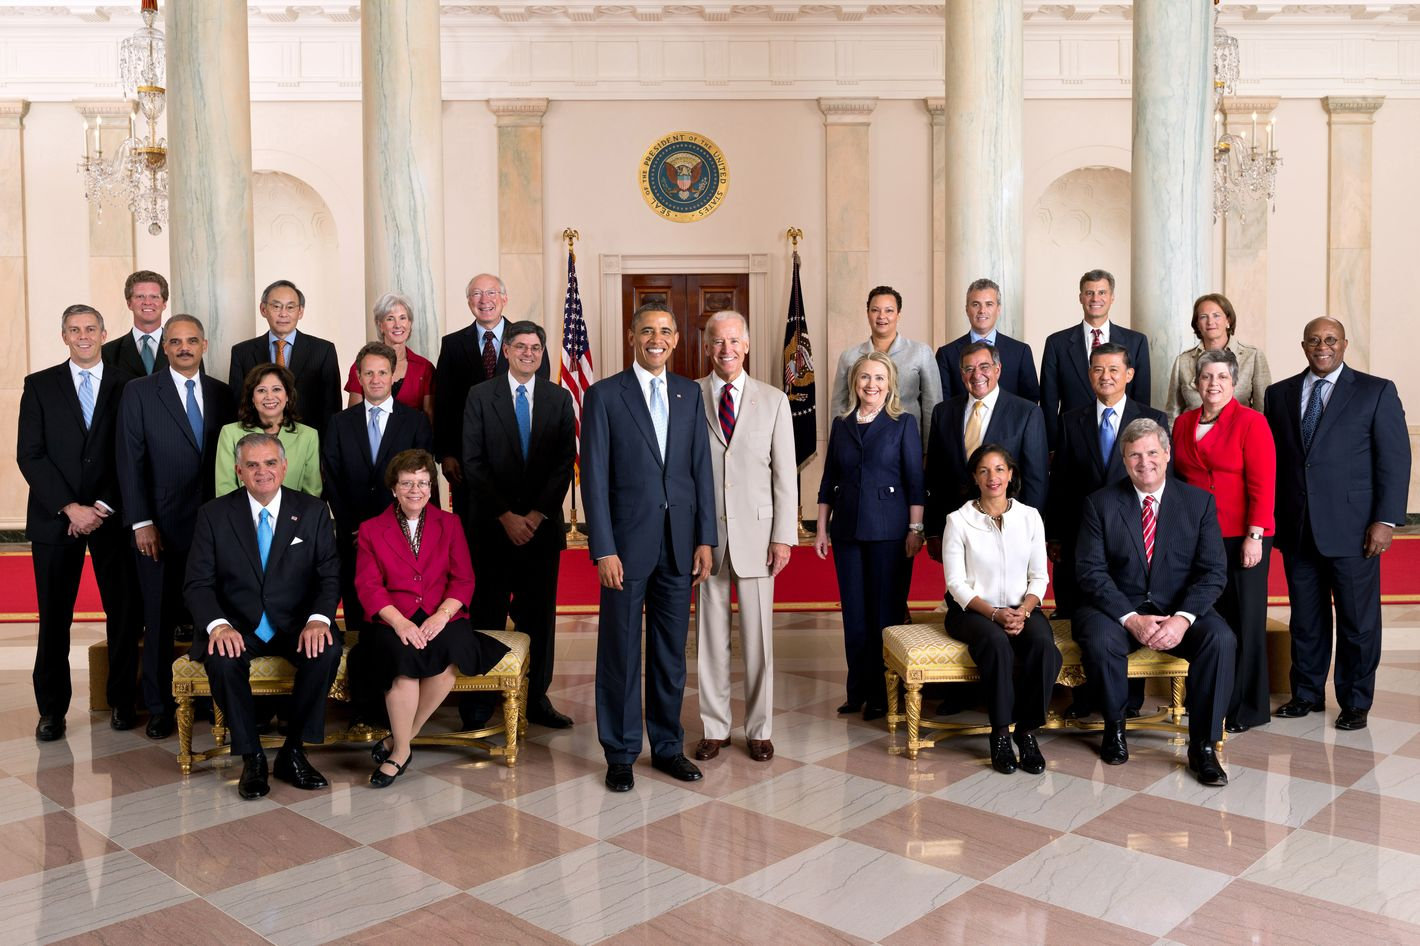 In this handout provided by the White House, U.S. President Barack Obama and Vice President Joe Biden pose with the full Cabinet for an official group photo in the Grand Foyer of the White House, July 26, 2012 in Washington, DC. Seated, from left, are: Transportation Secretary Ray LaHood, Acting Commerce Secretary Rebecca Blank, U.S. Permanent Representative to the United Nations Susan Rice, and Agriculture Secretary Tom Vilsack. Standing in the second row, from left, are: Education Secretary Arne Duncan, Attorney General Eric H. Holder, Jr., Labor Secretary Hilda L. Solis, Treasury Secretary Timothy F. Geithner, Chief of Staff Jack Lew, Secretary of State Hillary Rodham Clinton, Defense Secretary Leon Panetta, Veterans Affairs Secretary Eric K. Shinseki, Homeland Security Secretary Janet Napolitano, and U.S. Trade Representative Ron Kirk.Standing in the third row, from left, are: Housing and Urban Development Secretary Shaun Donovan, Energy Secretary Steven Chu, Health and Human Services Secretary Kathleen Sebelius, Interior Secretary Ken Salazar, Environmental Protection Agency Administrator Lisa P. Jackson, Office of Management and Budget Acting Director Jeffrey D. Zients, Council of Economic Advisers Chair Alan Krueger, and Small Business Administrator Karen G. Mills.